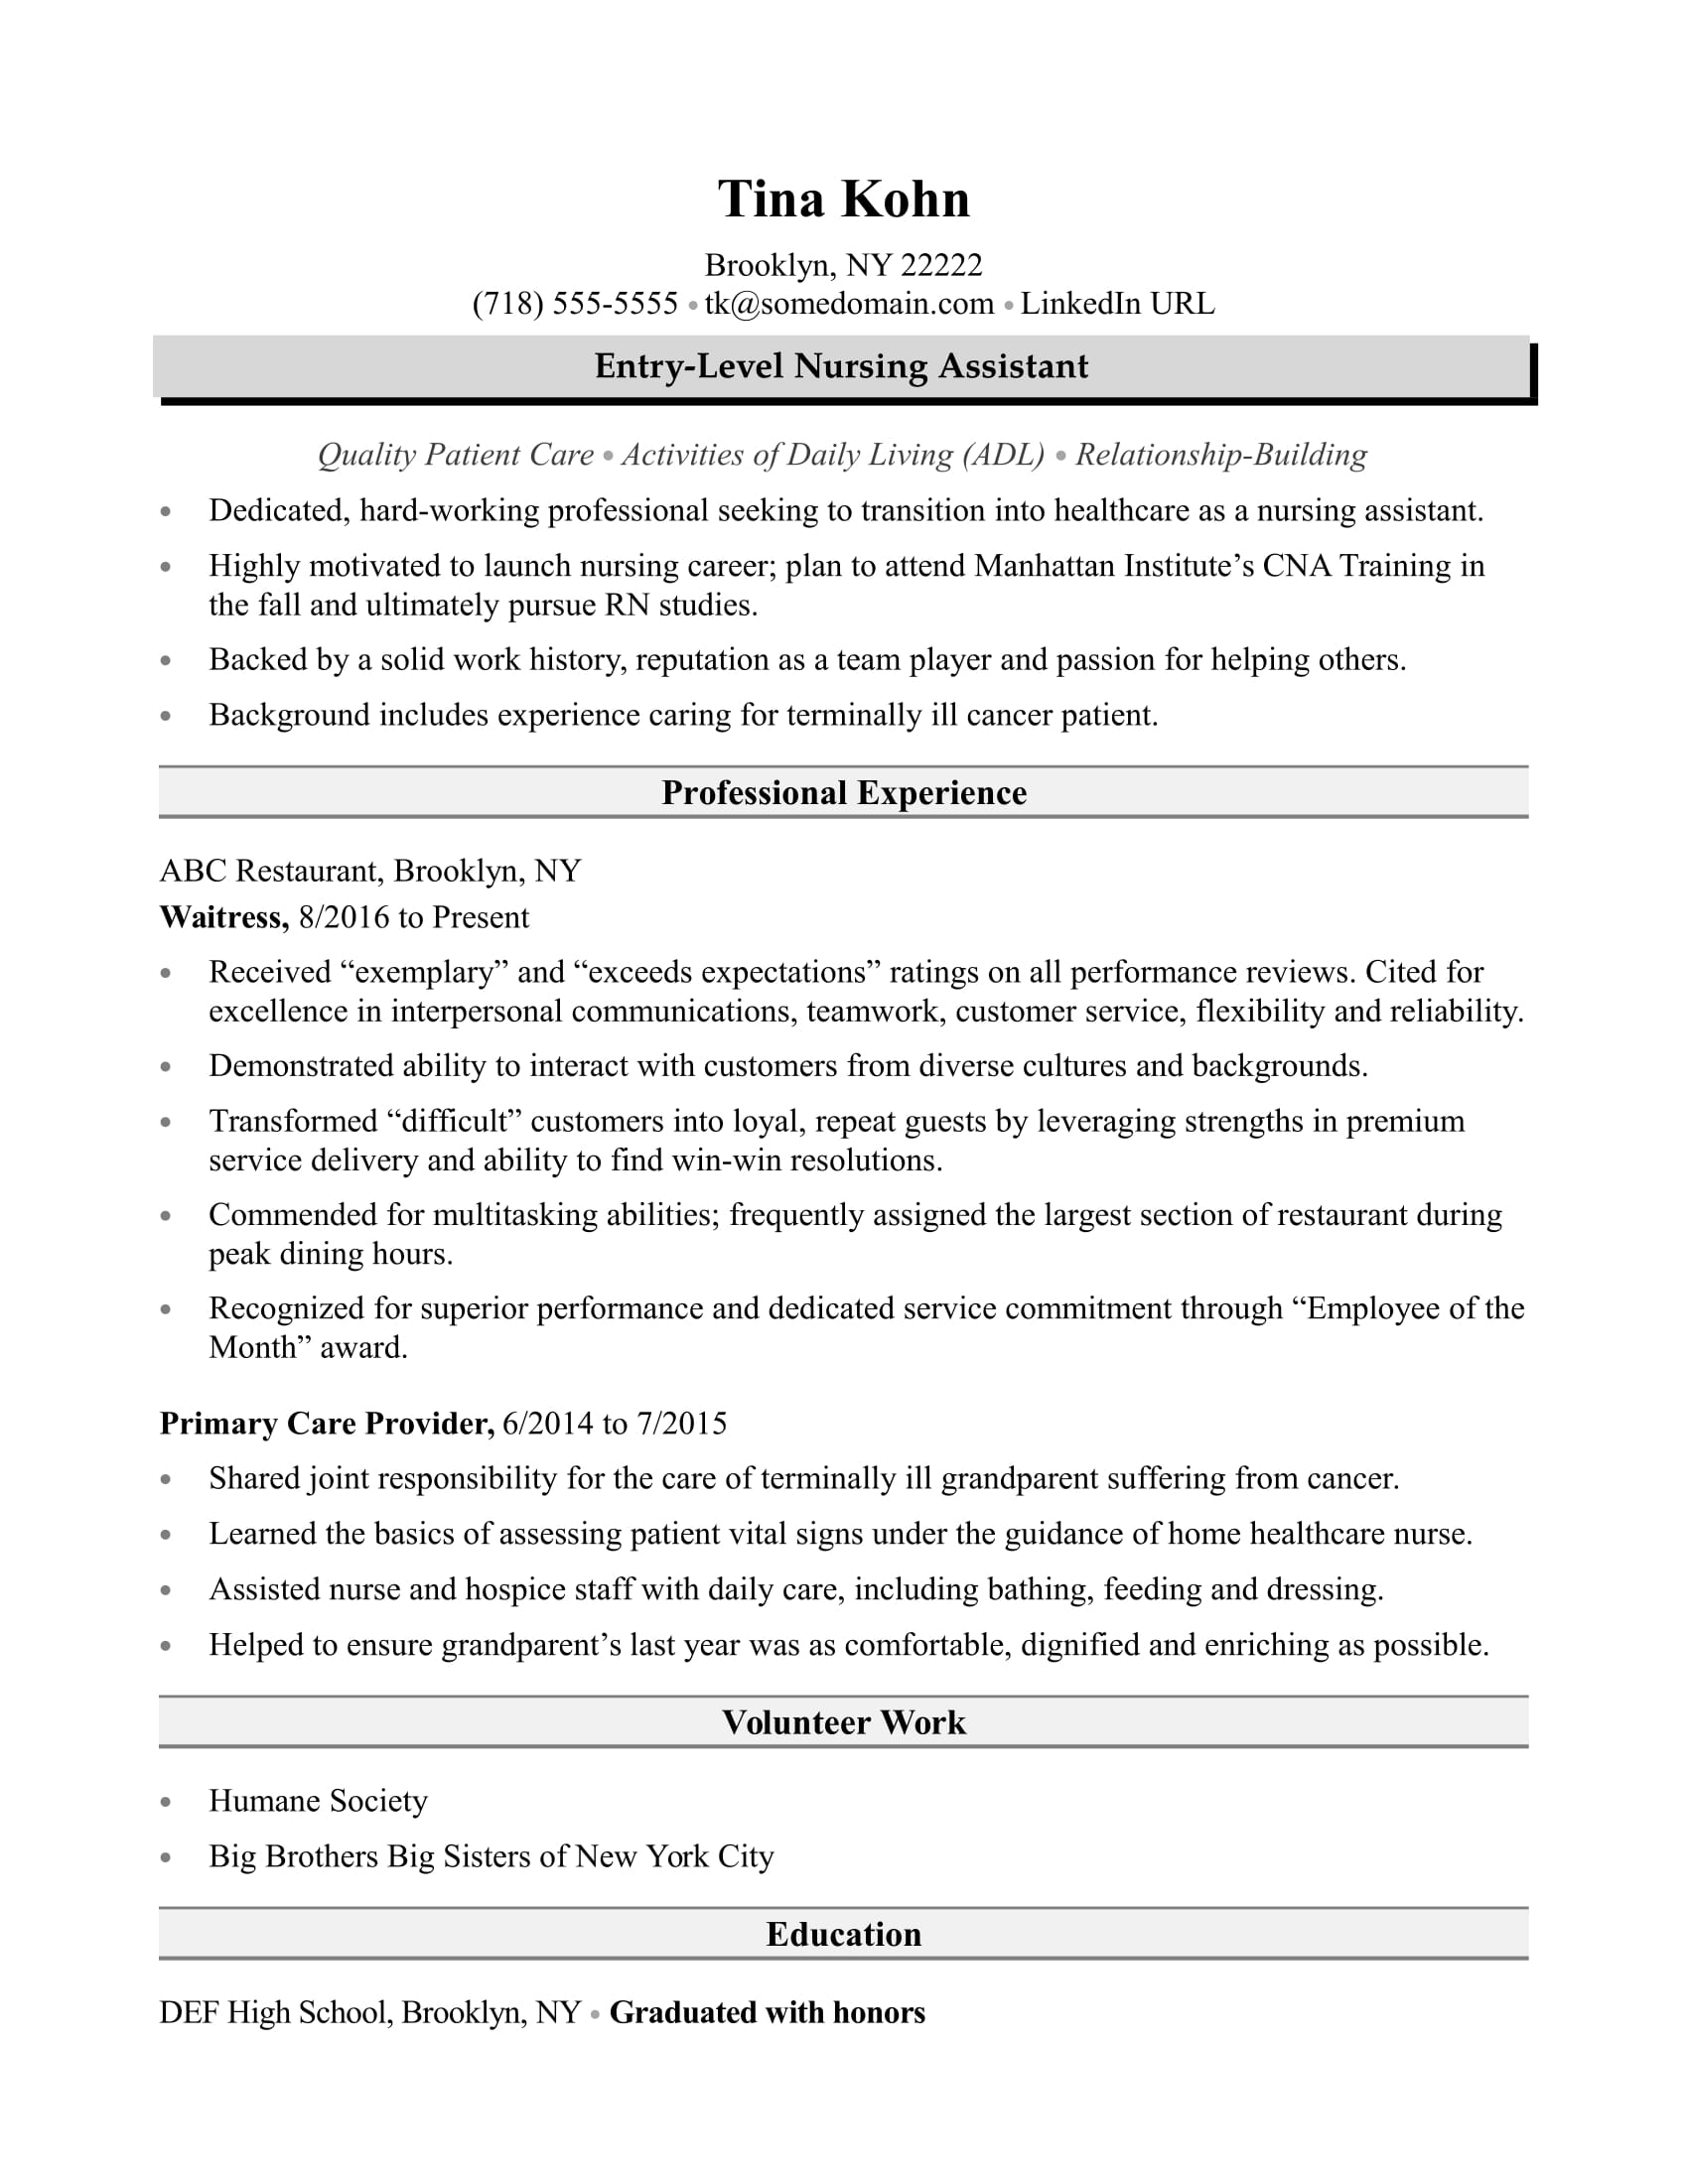 Superb Nursing Assistant Resume Sample And Nurse Assistant Resume